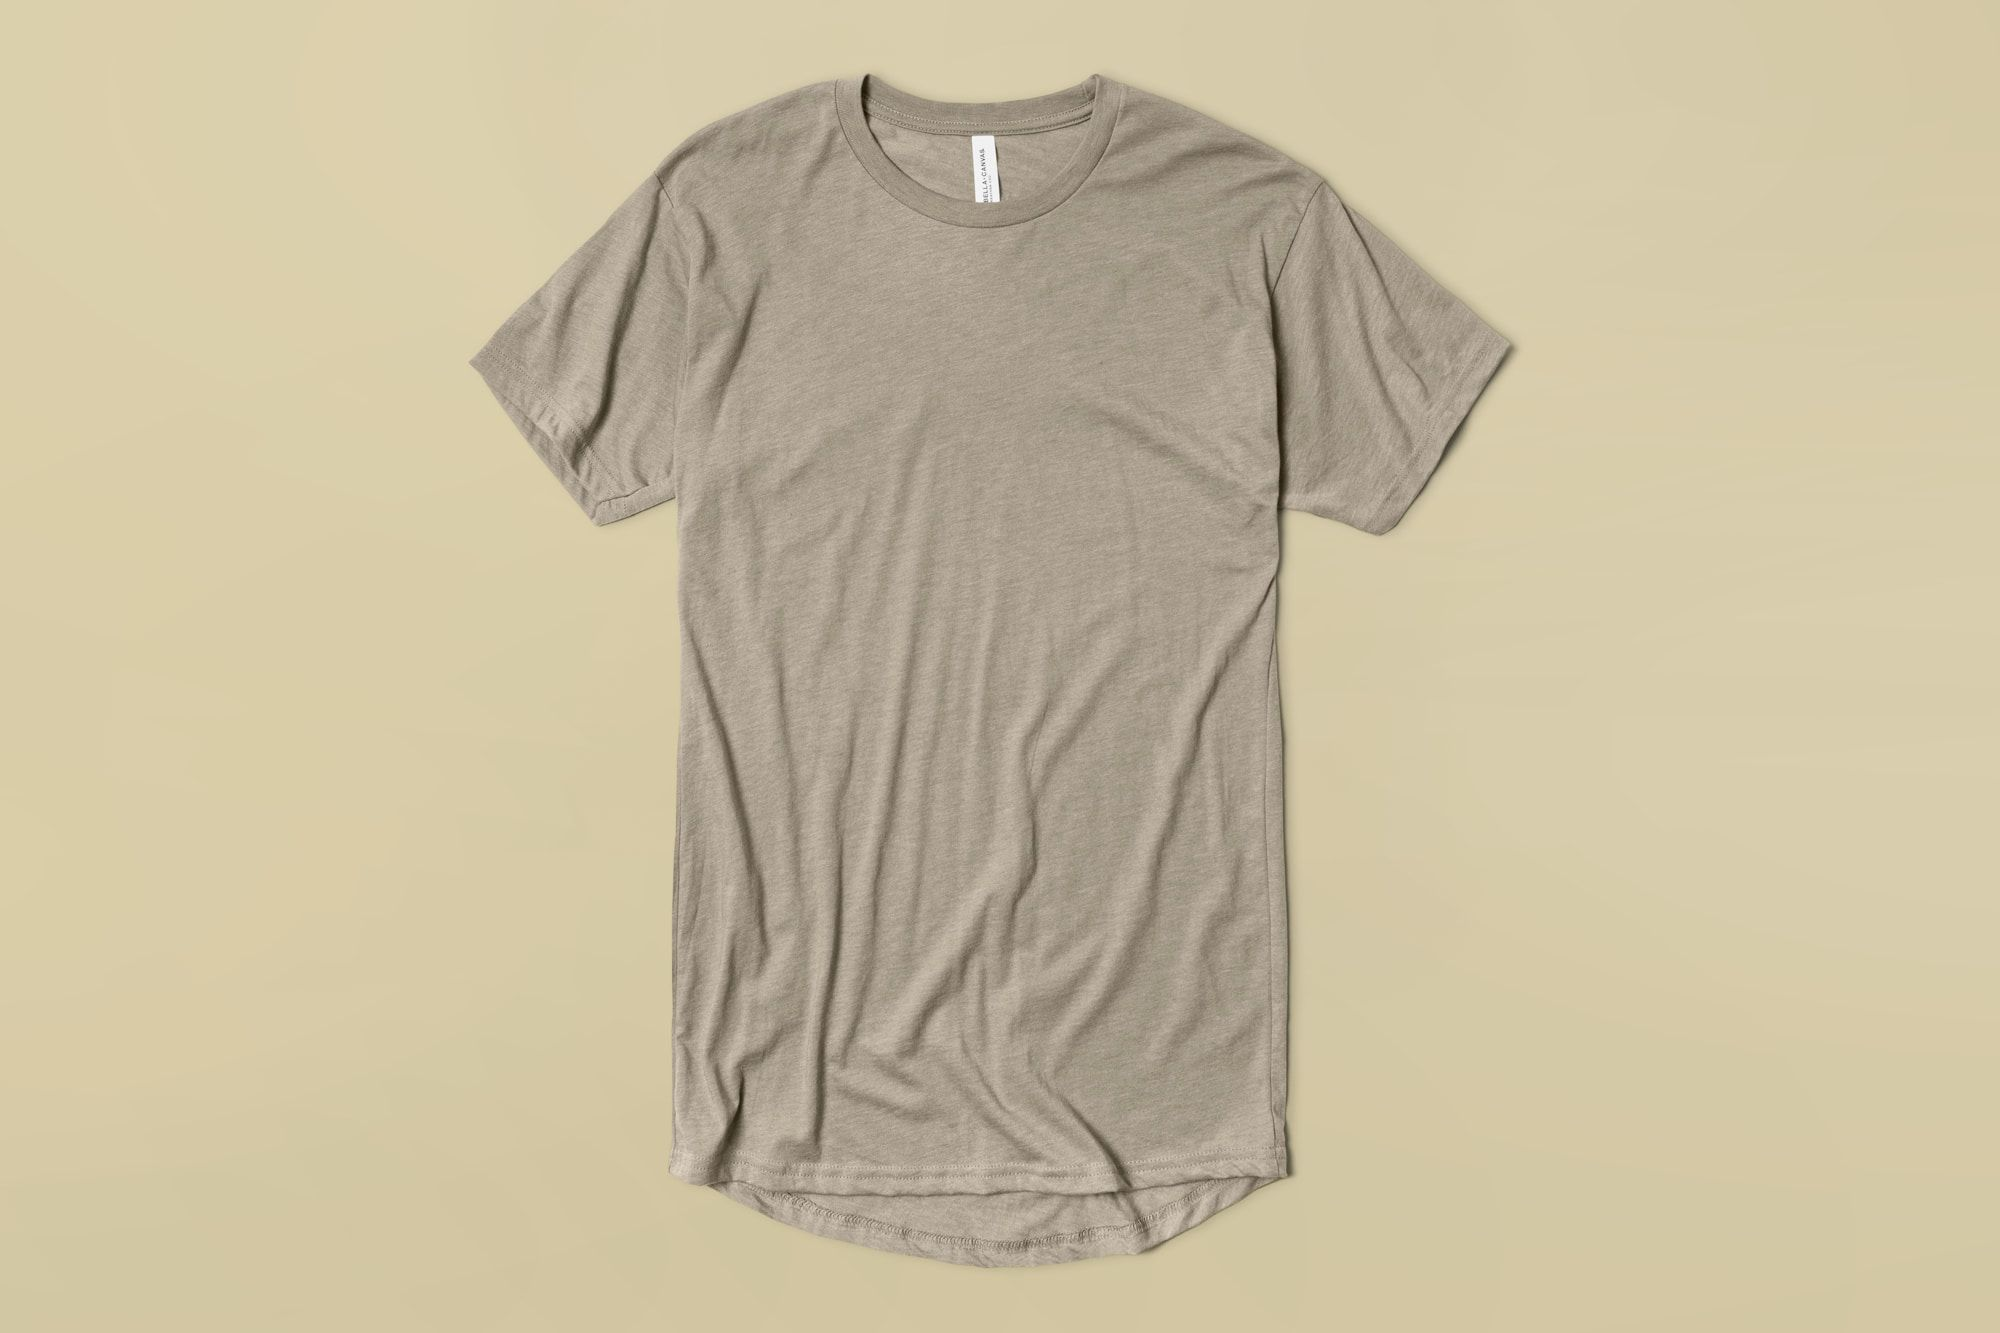 Flatlay showing t-shirt with curved hem bottom.